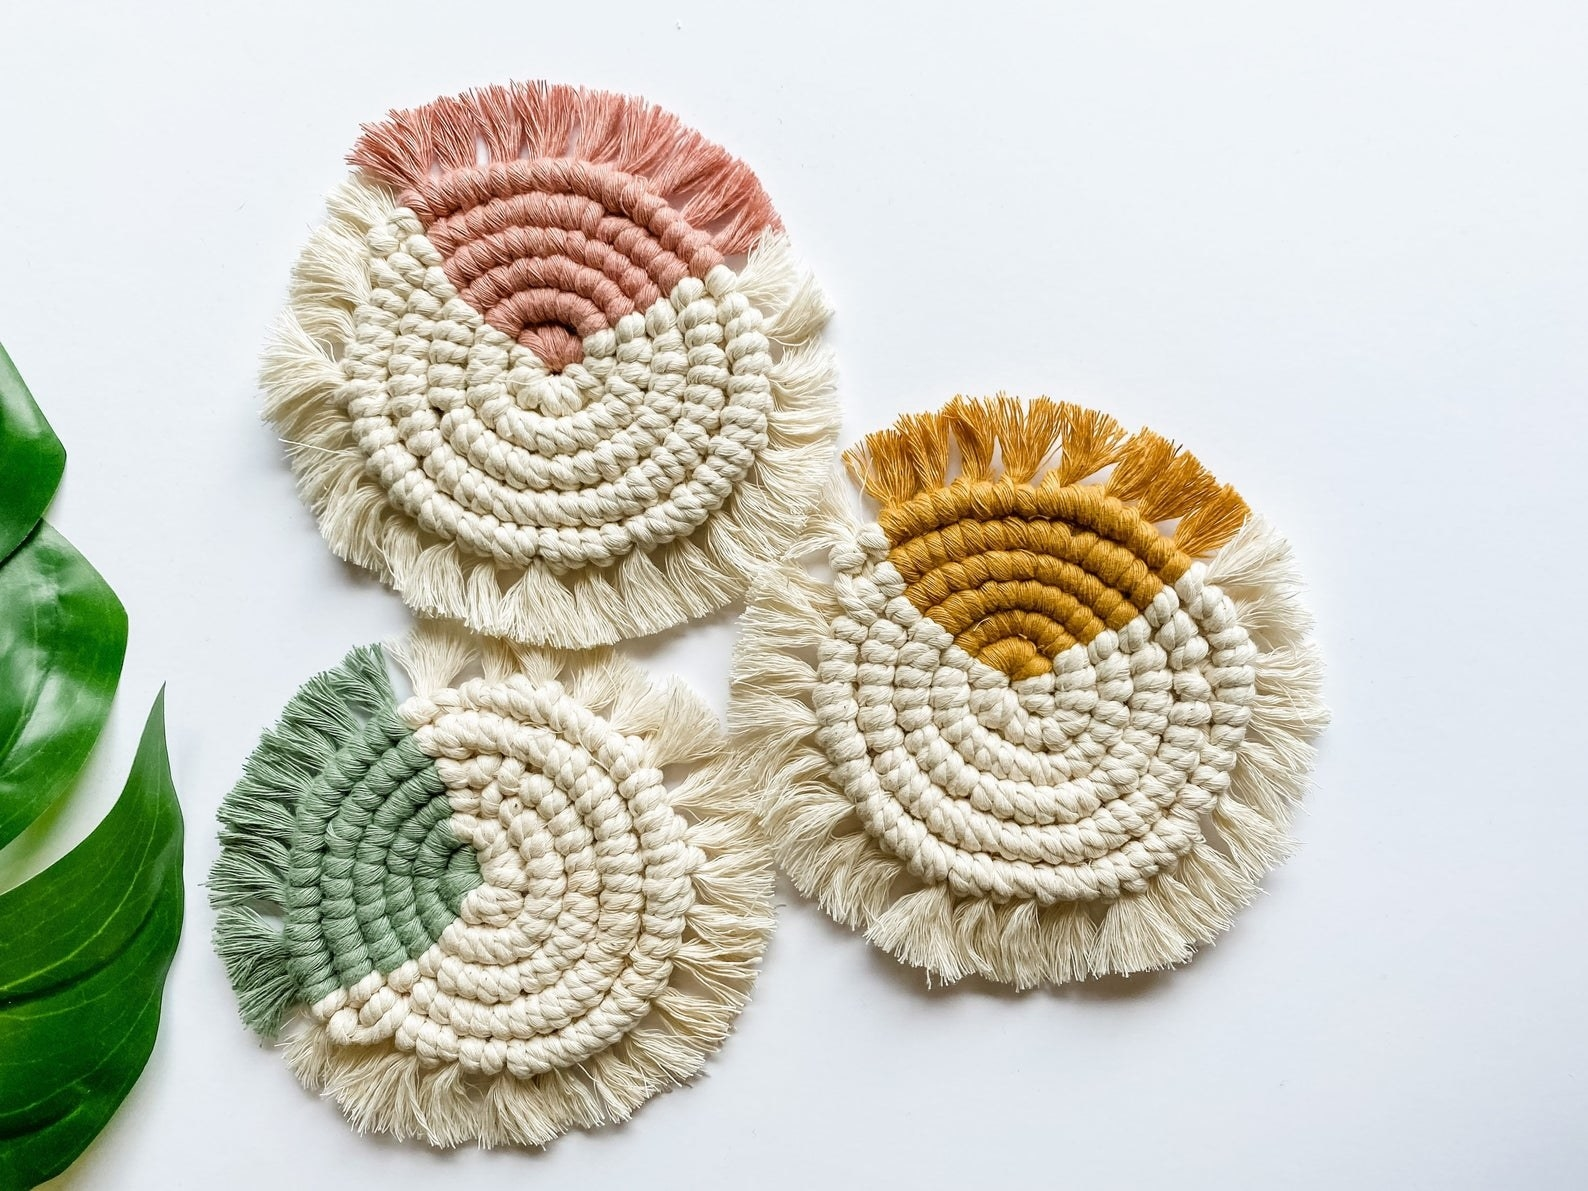 Round cream colored macarame coasters with tassels and a small colored portion in yellow, green, and pink